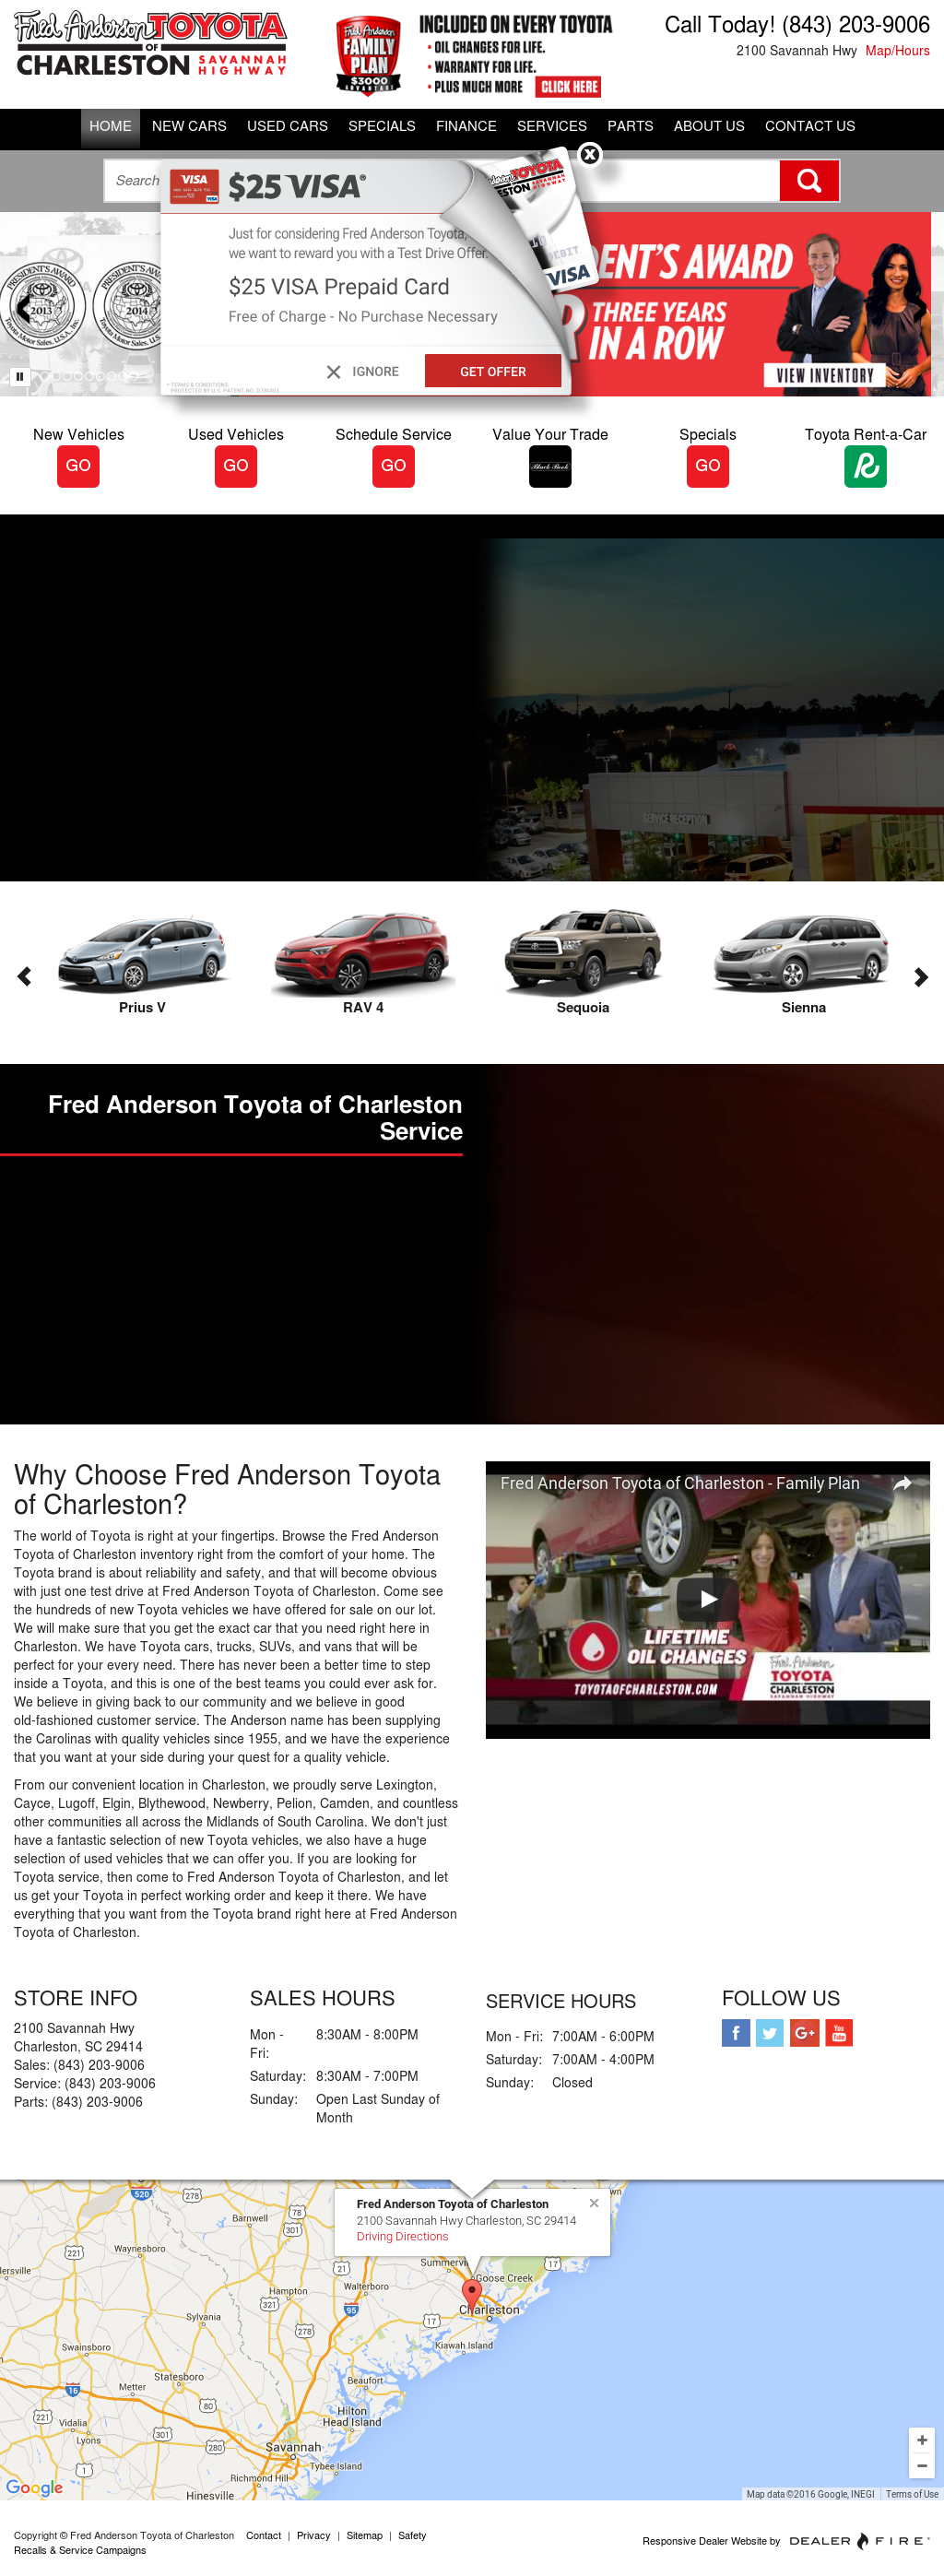 Fred Anderson Toyota Of Charleston S Competitors Revenue Number Of Employees Funding Acquisitions News Owler Company Profile